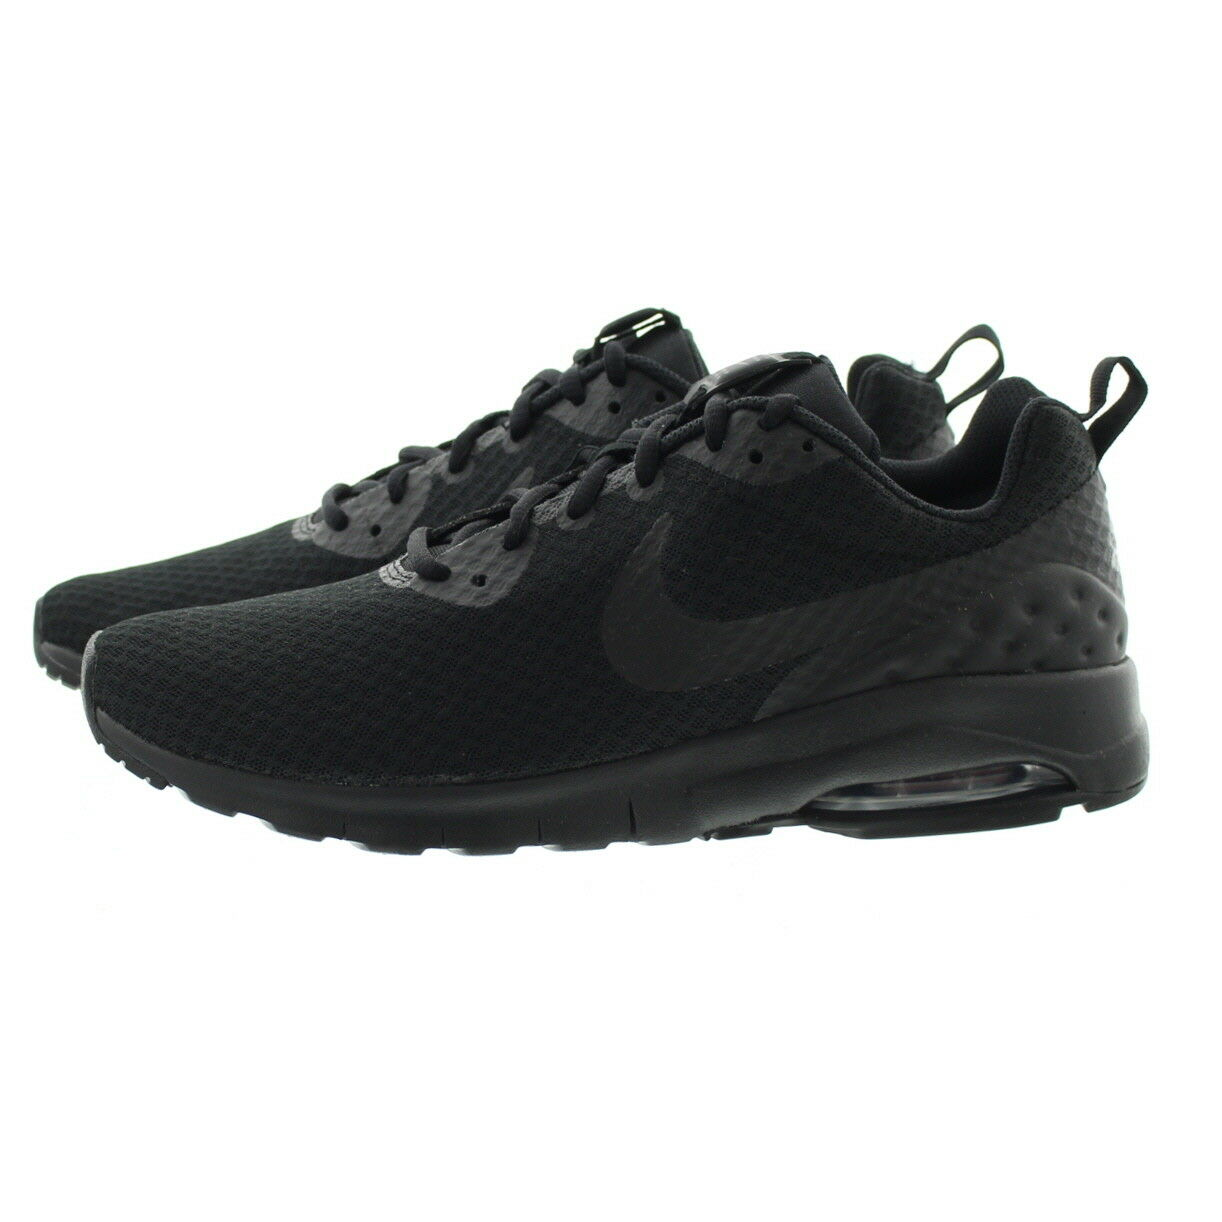 size 40 43ca6 8eaaa Nike Air Max Motion LW Mens 833260-002 Black Anthracite Running Shoes Size  9.5 for sale online   eBay